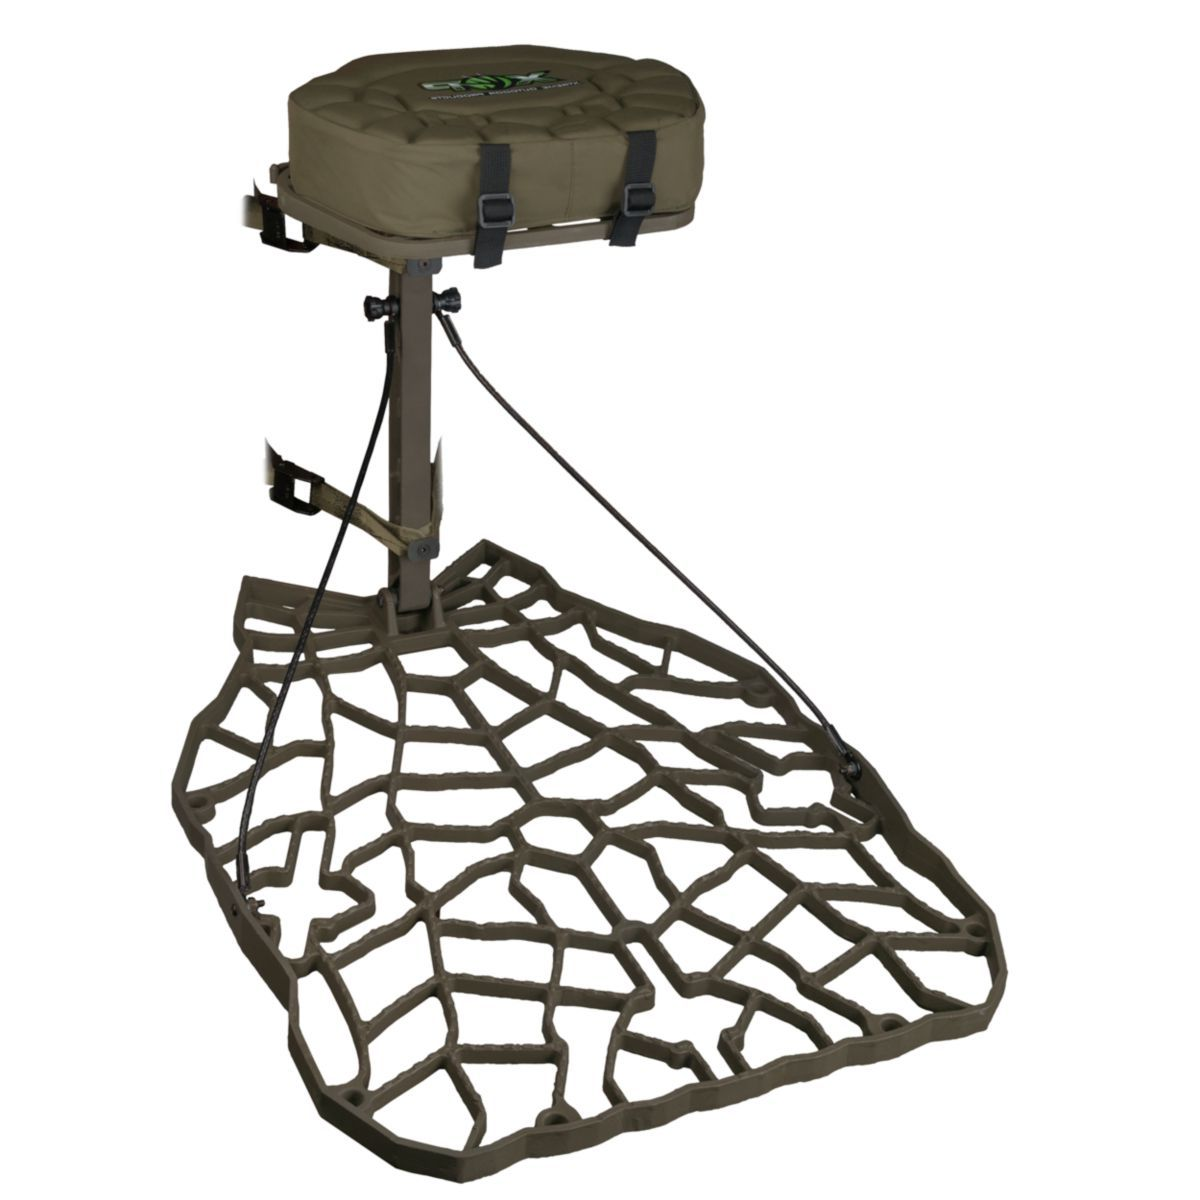 Xtreme® Outdoor Products Maximus Hang-On Treestand